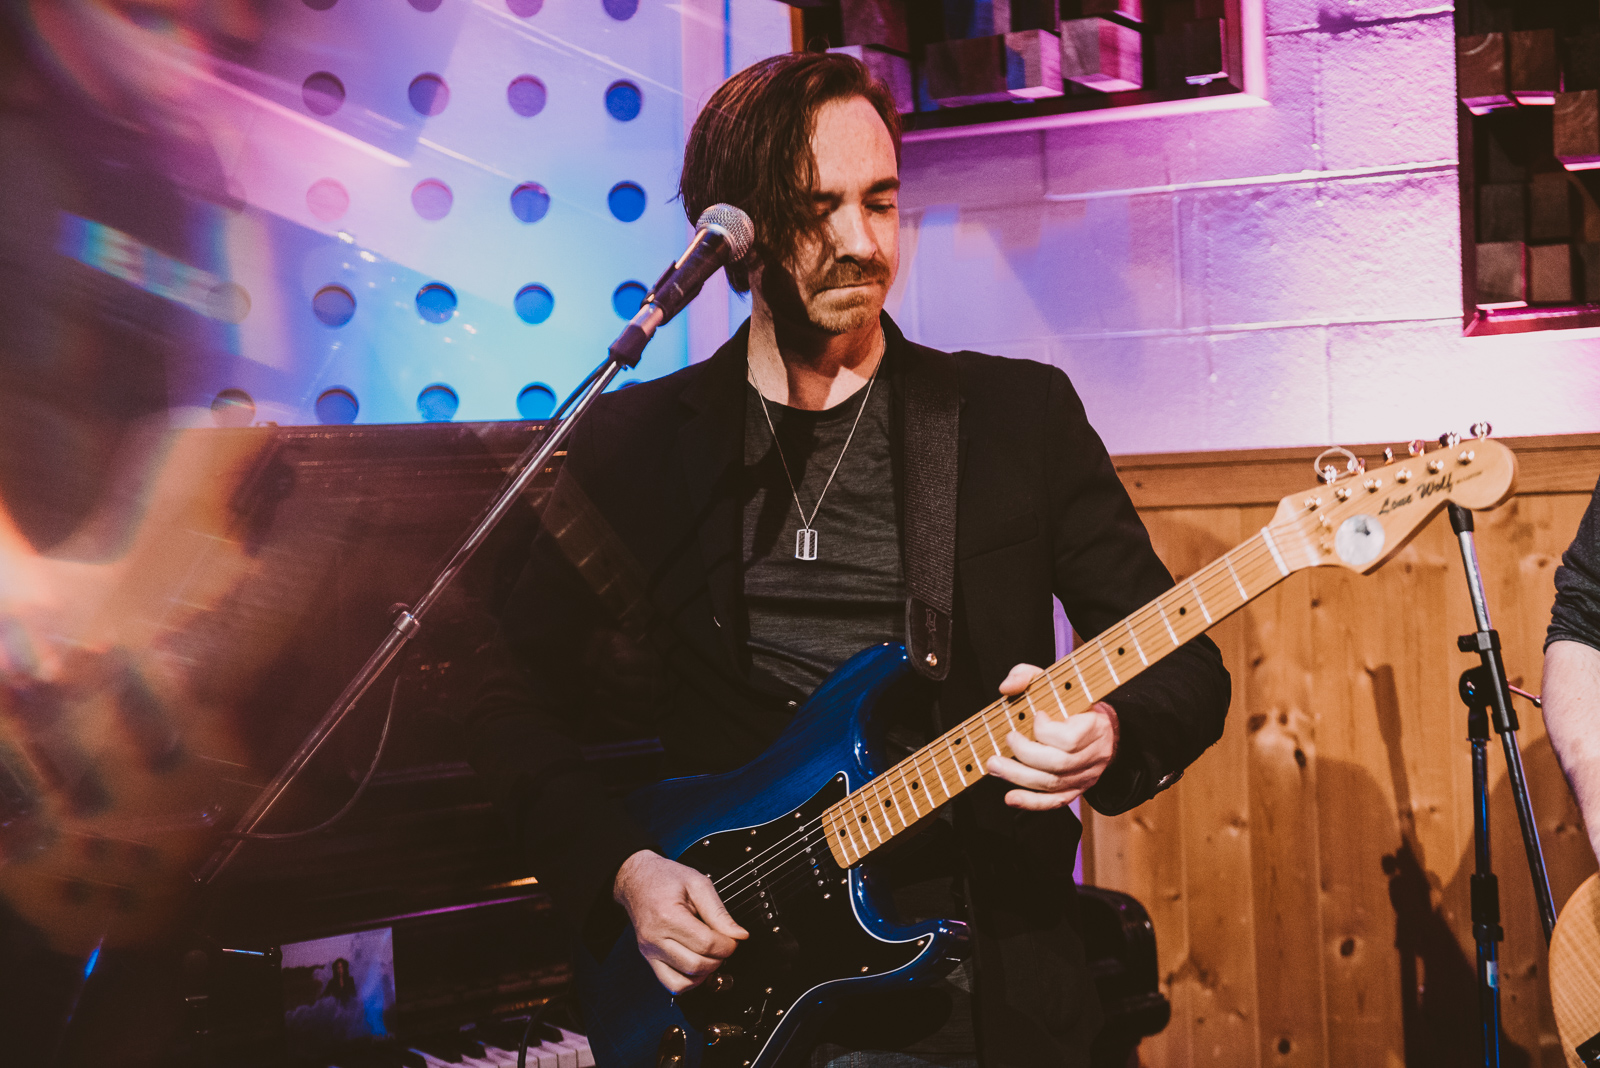 1_Charlie_PS_Music-Blue_Light_Sessions-EP_Release-Timothy_Nguyen-20180510 (12 of 60).jpg